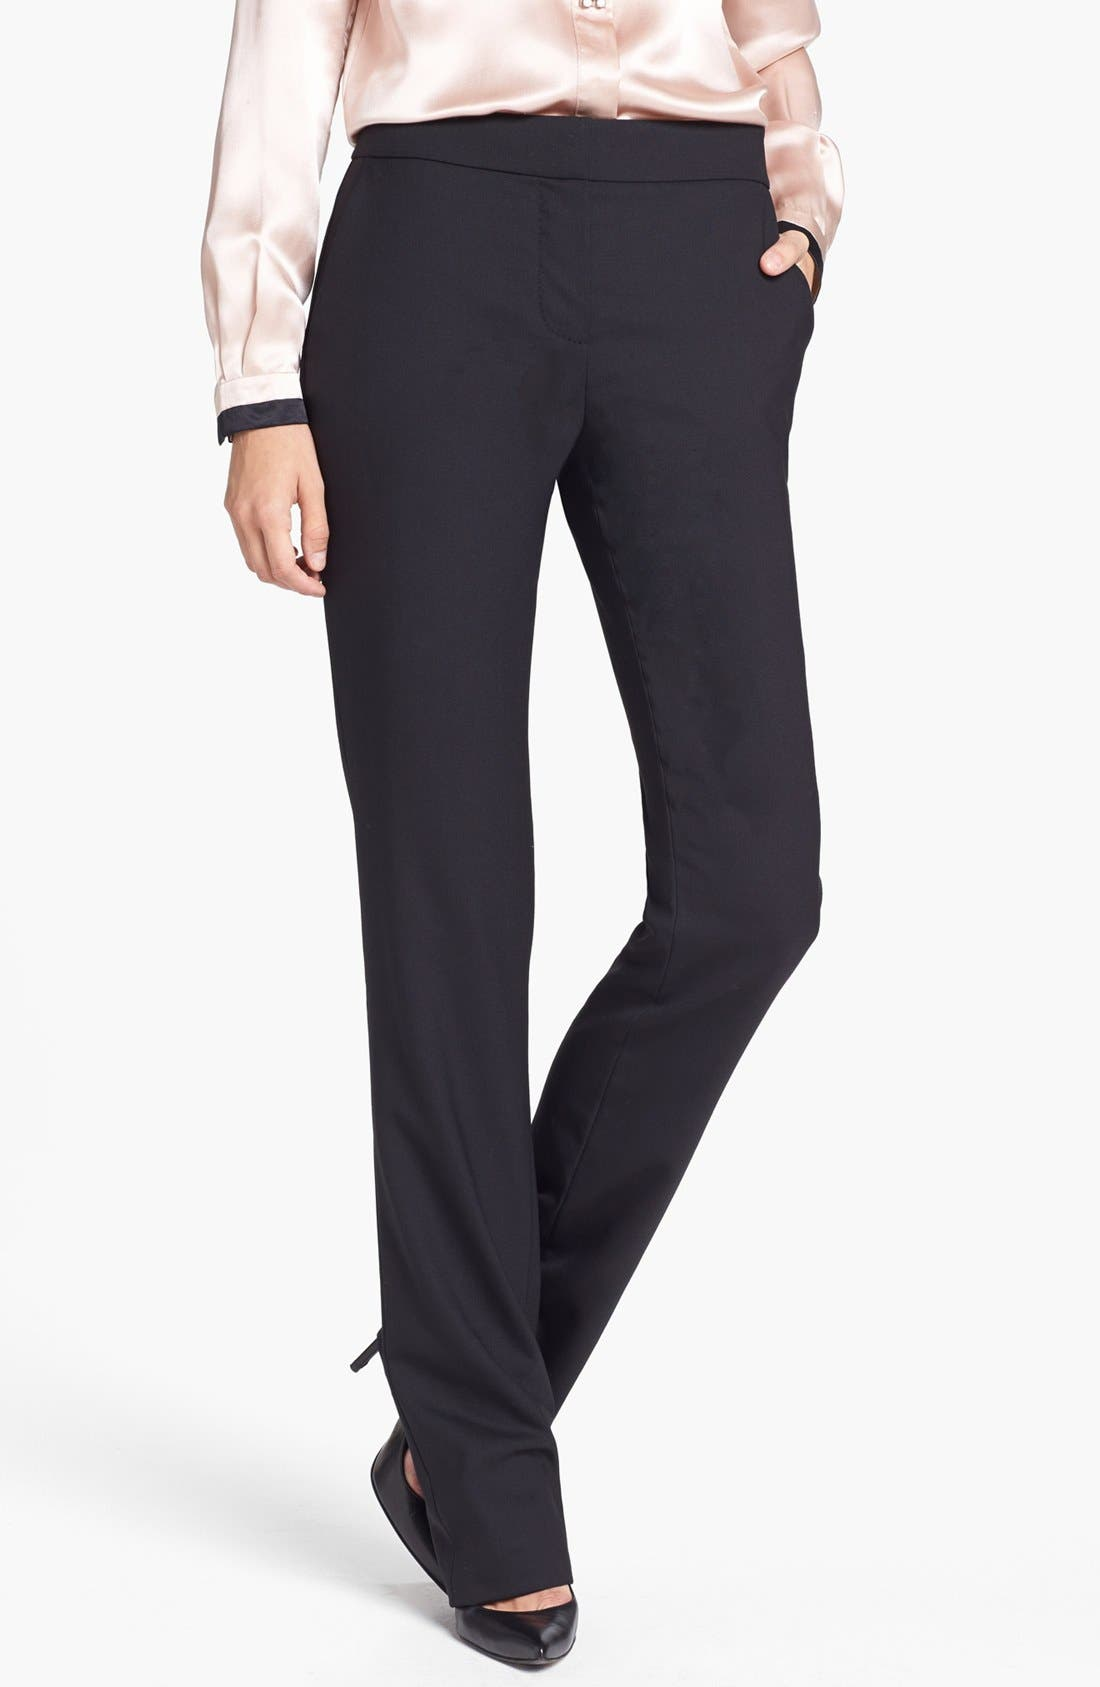 Alternate Image 1 Selected - Tory Burch 'Dolly' Stretch Wool Pants